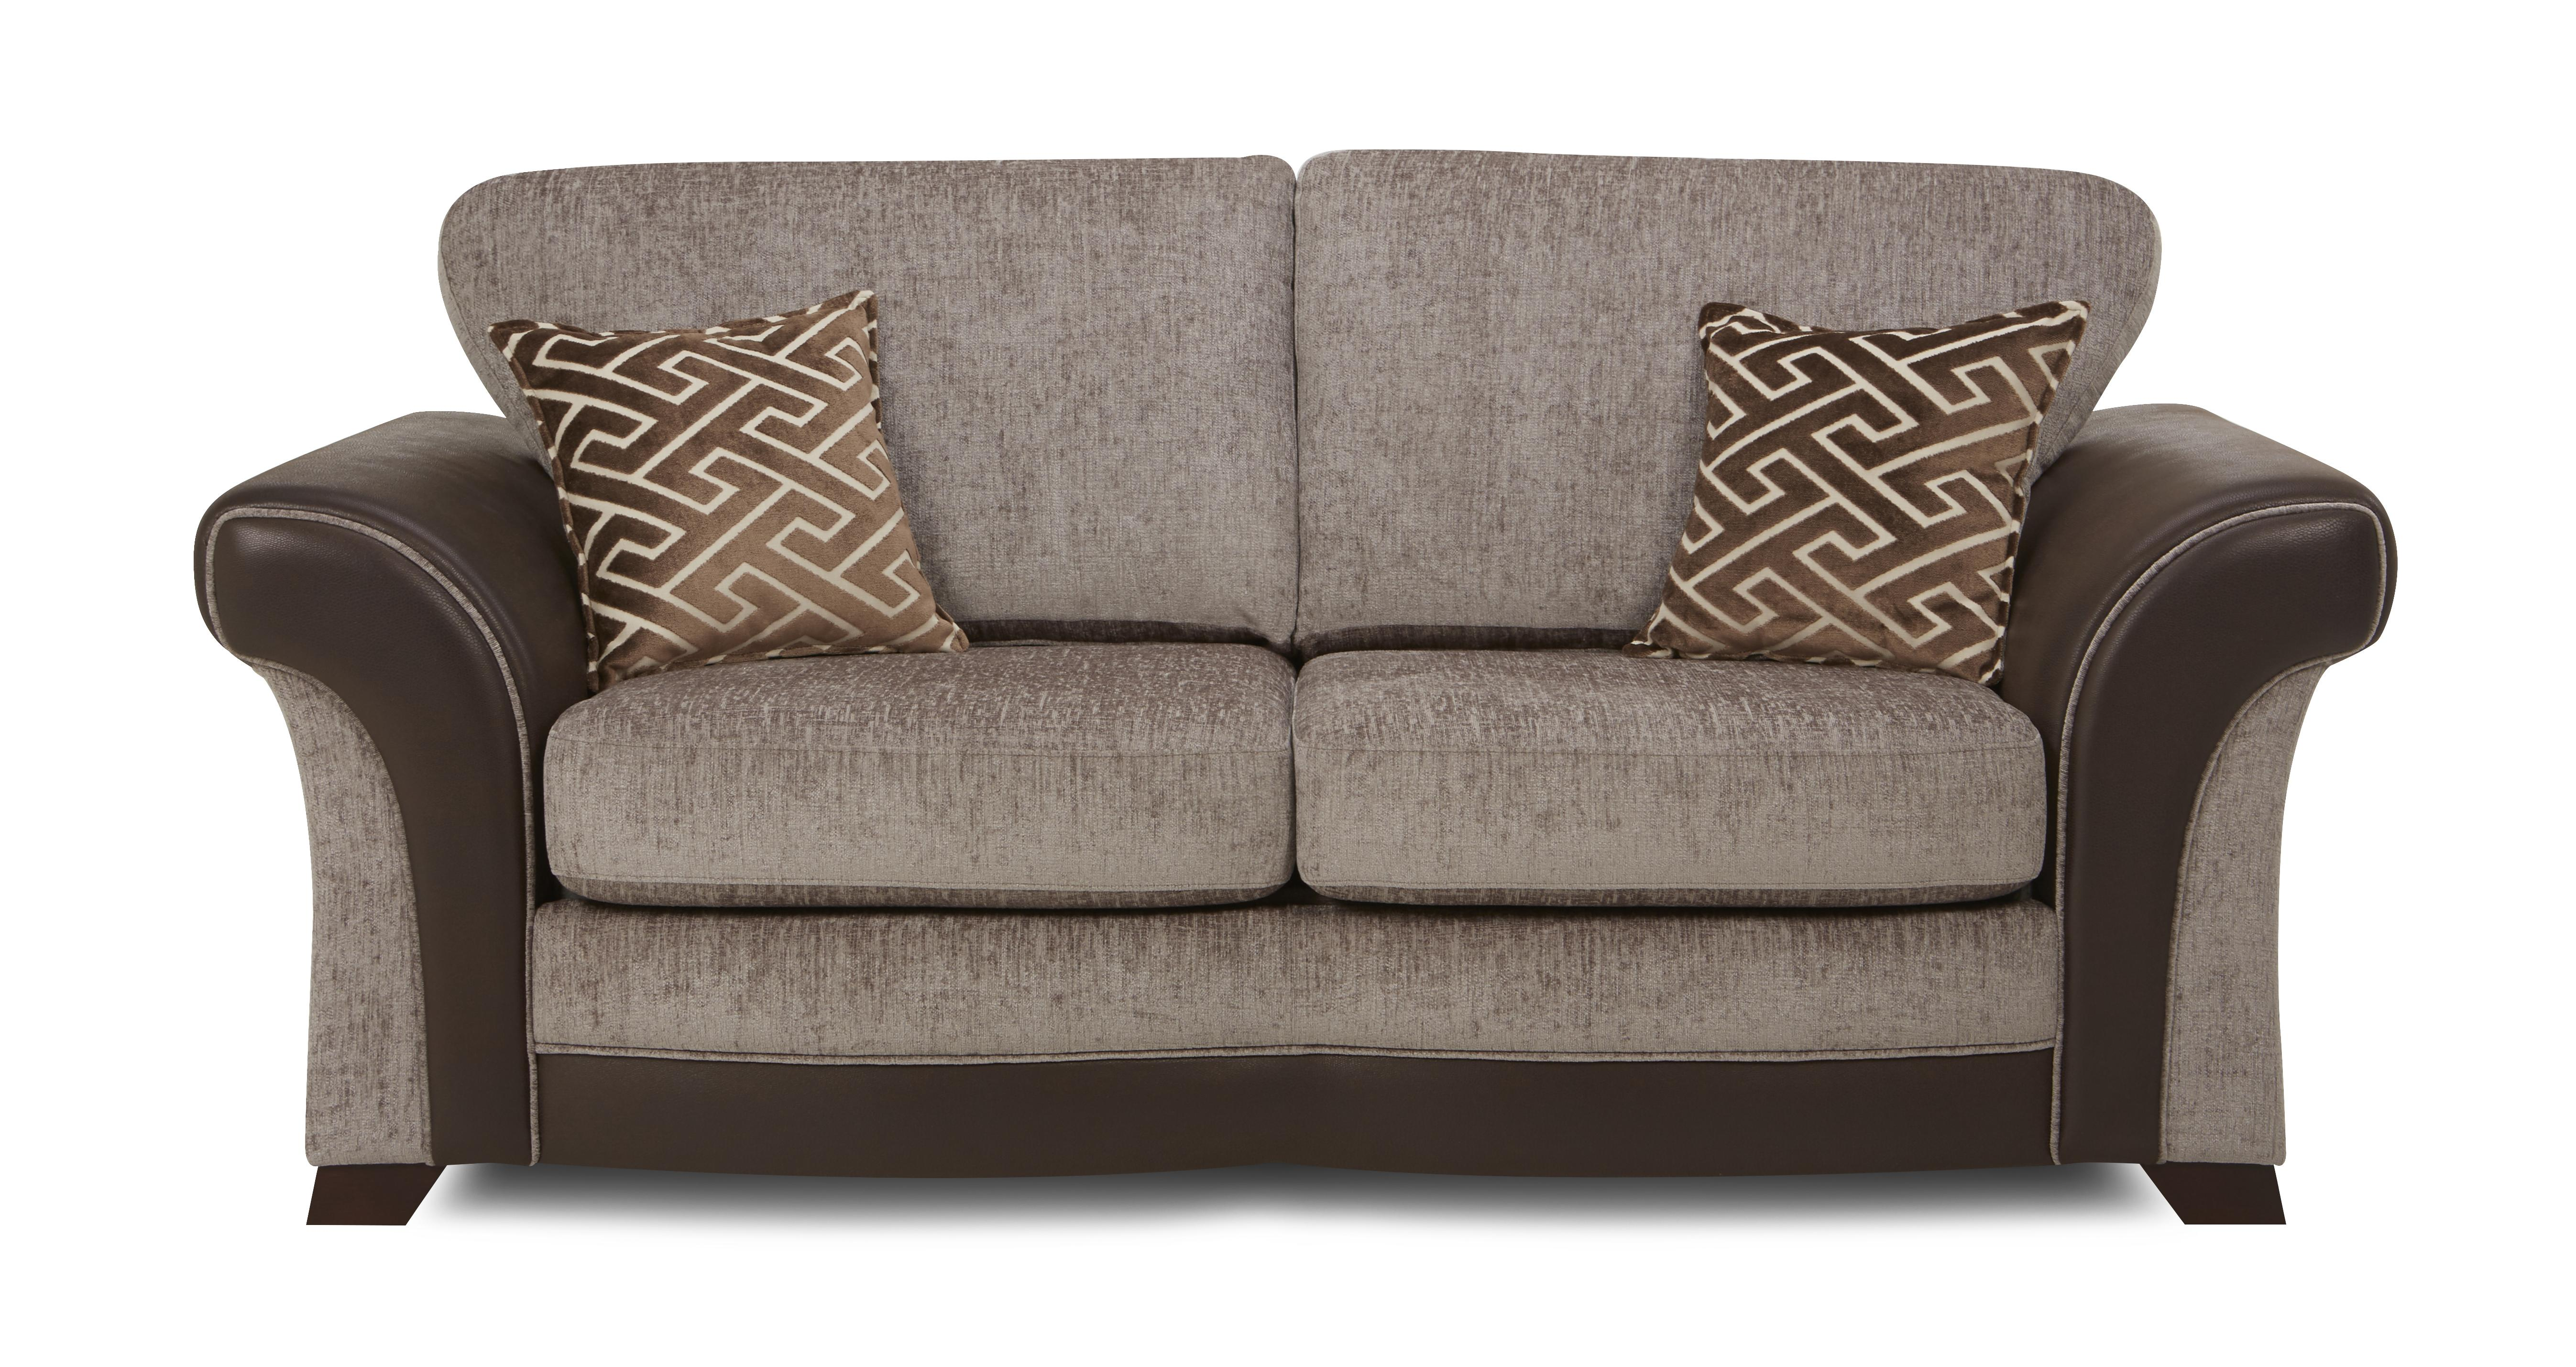 clearance sofa beds uk craigslist portland leather waltz 2 seater bed and storage footstool